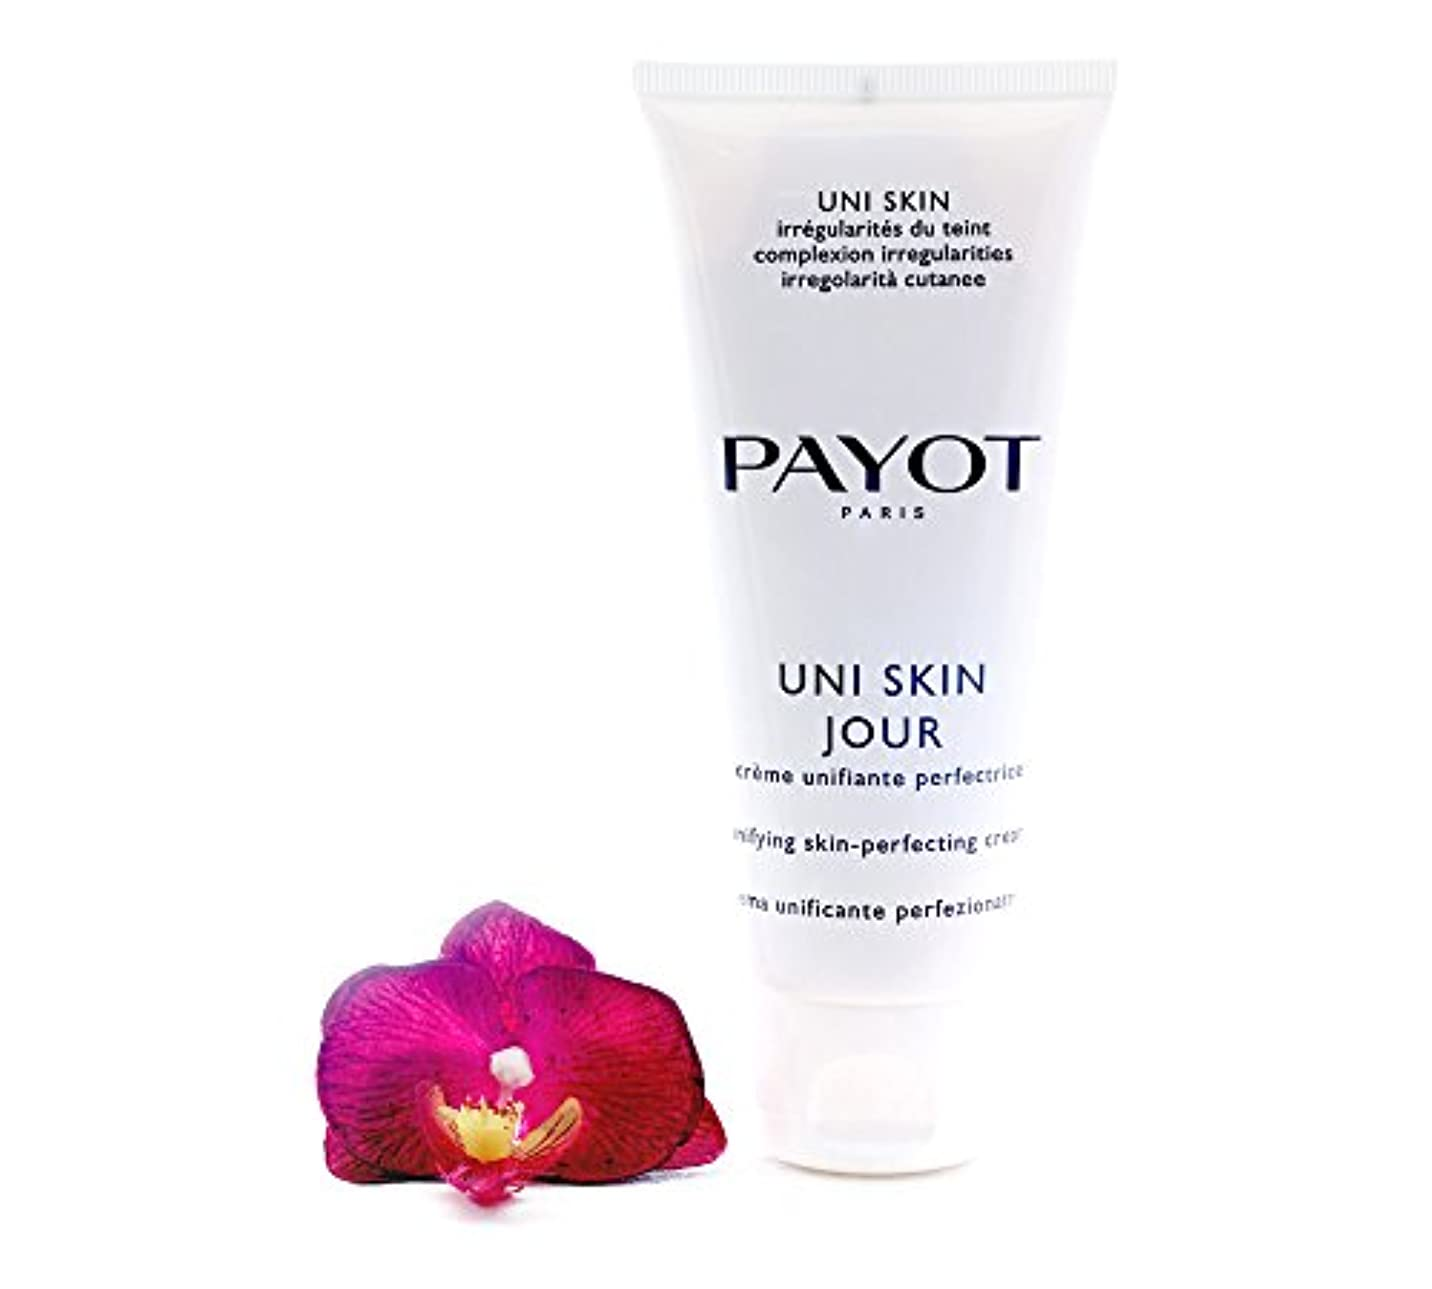 審判現金ジョグパイヨ Uni Skin Jour Unifying Skin-Perfecting Cream (Salon Size) 100ml/3.3oz並行輸入品